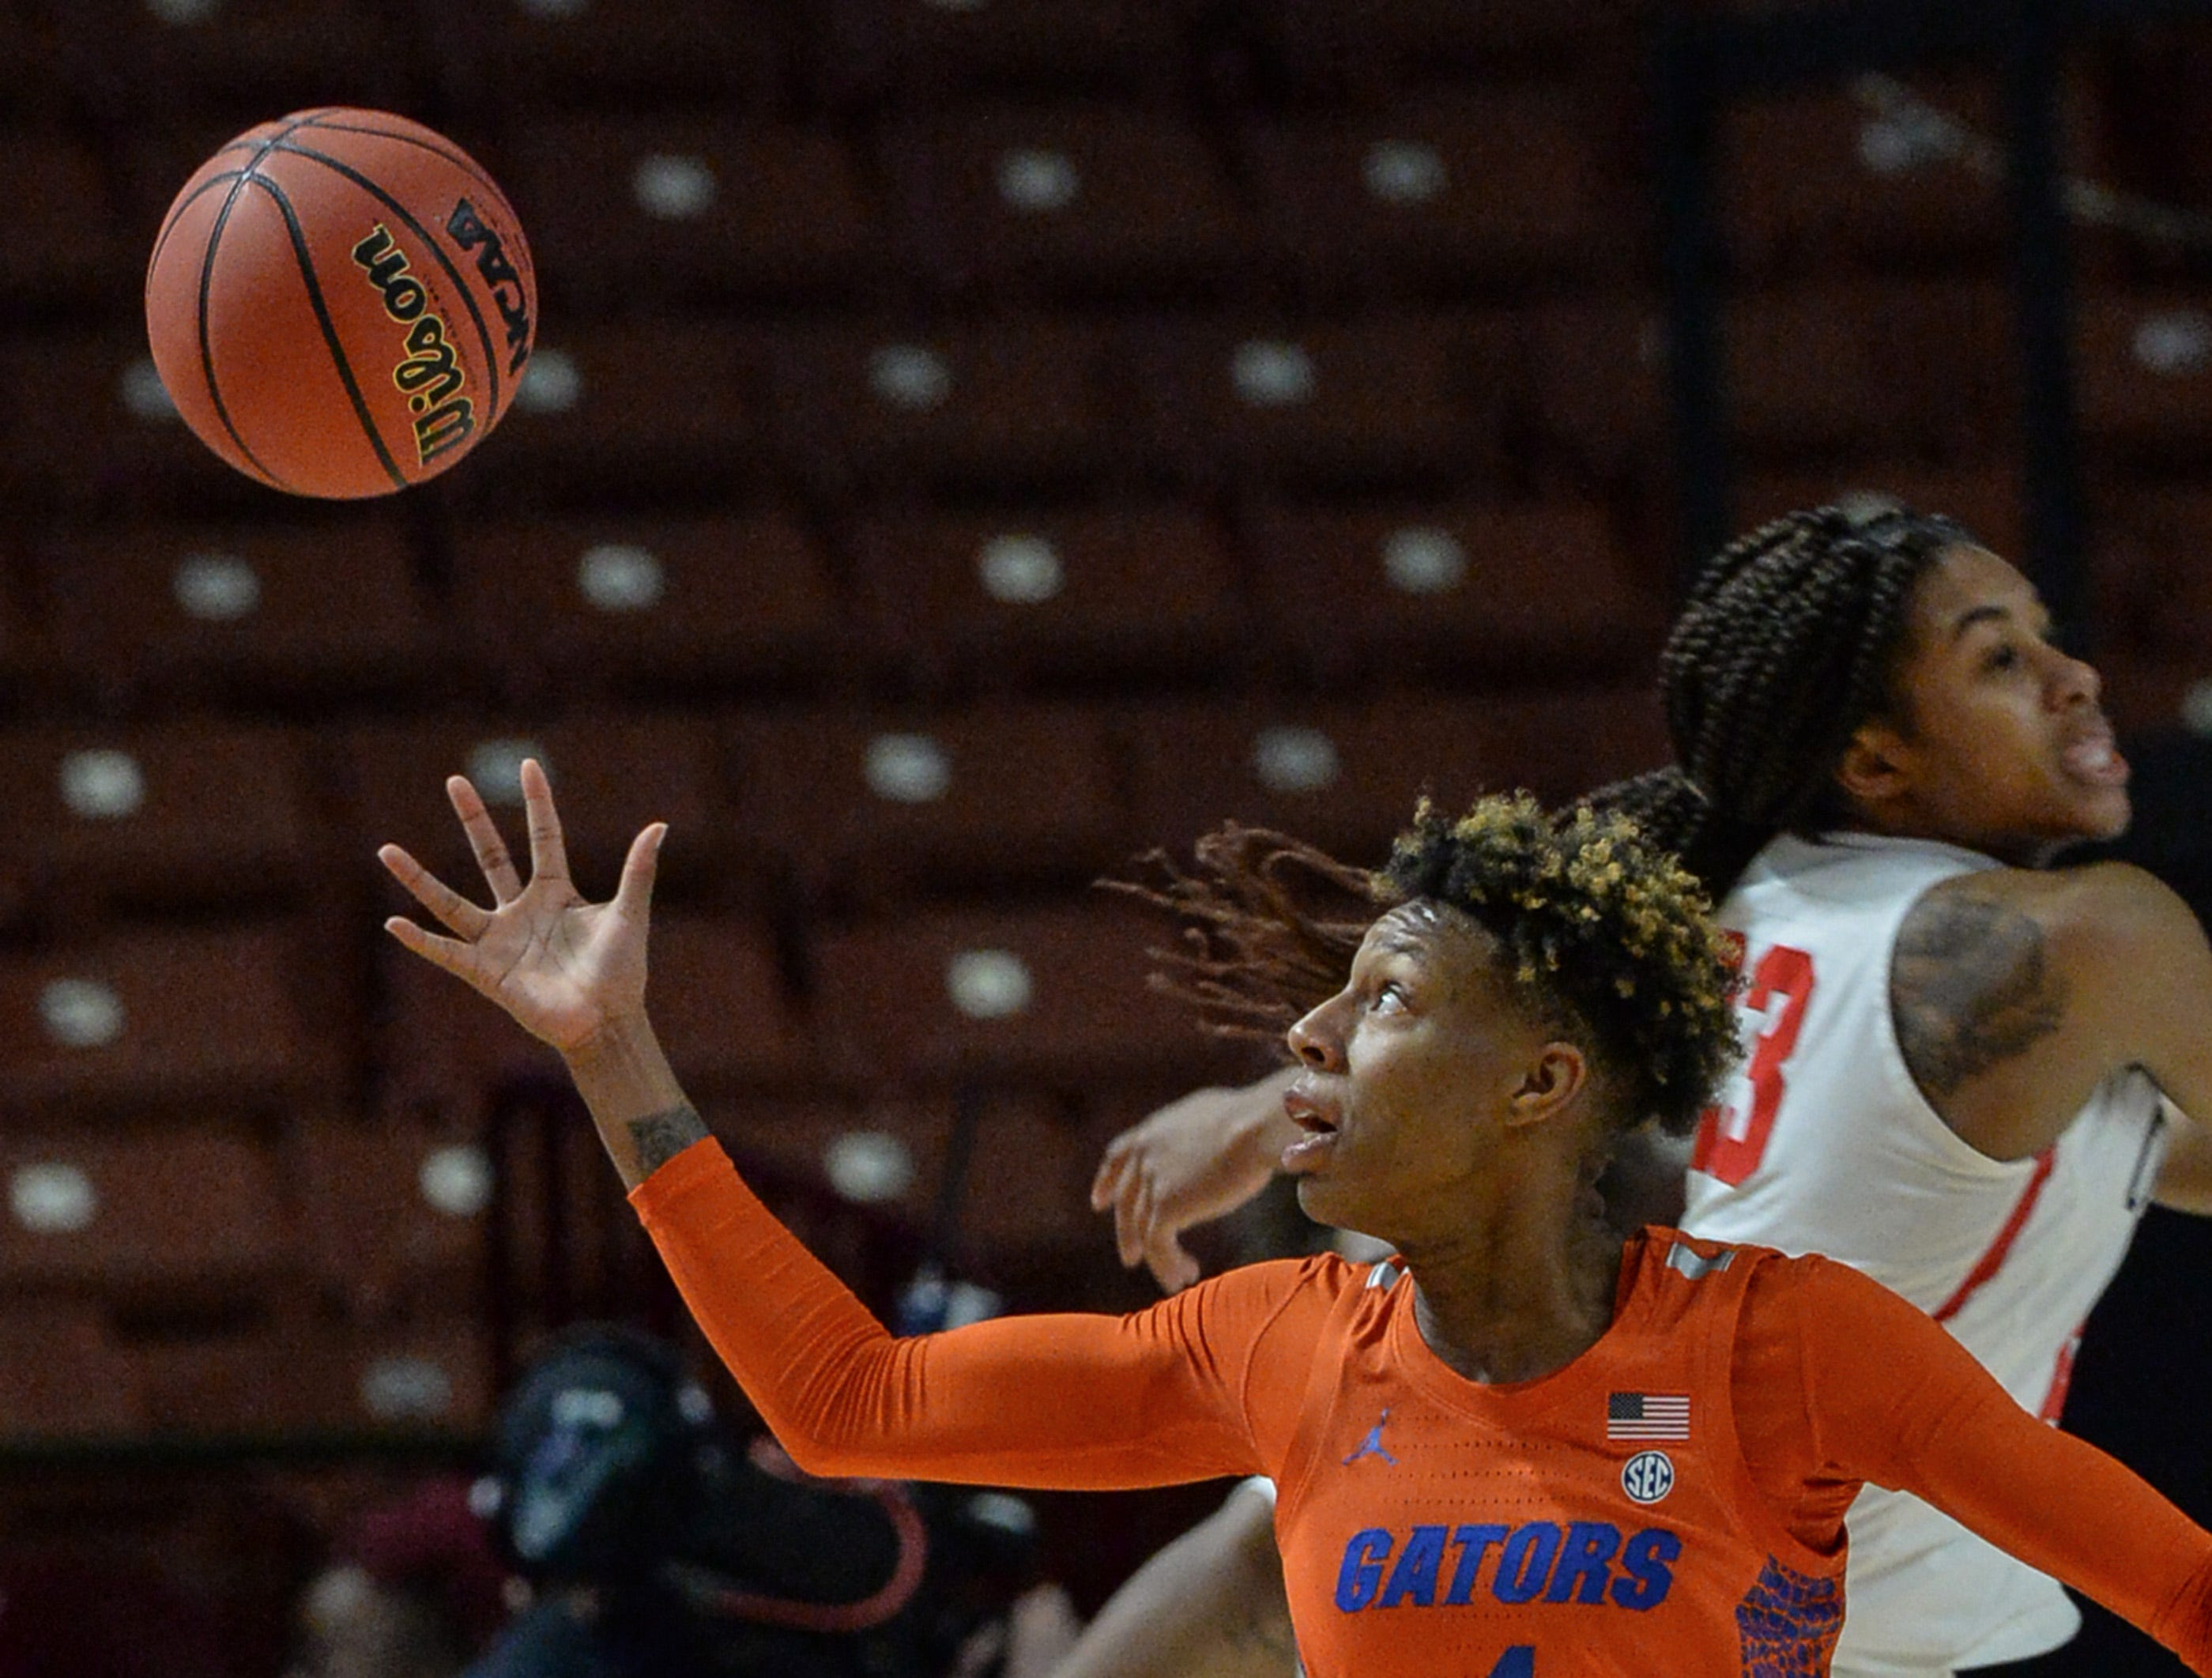 Florida guard Kiara Smith(1) reaches for a loose ball near Ole Miss senior Shandricka Sessom(23) during the fourth quarter of the Southeastern Conference Women's Tournament game at Bon Secour Wellness Arena in Greenville Wednesday, March 6, 2019.